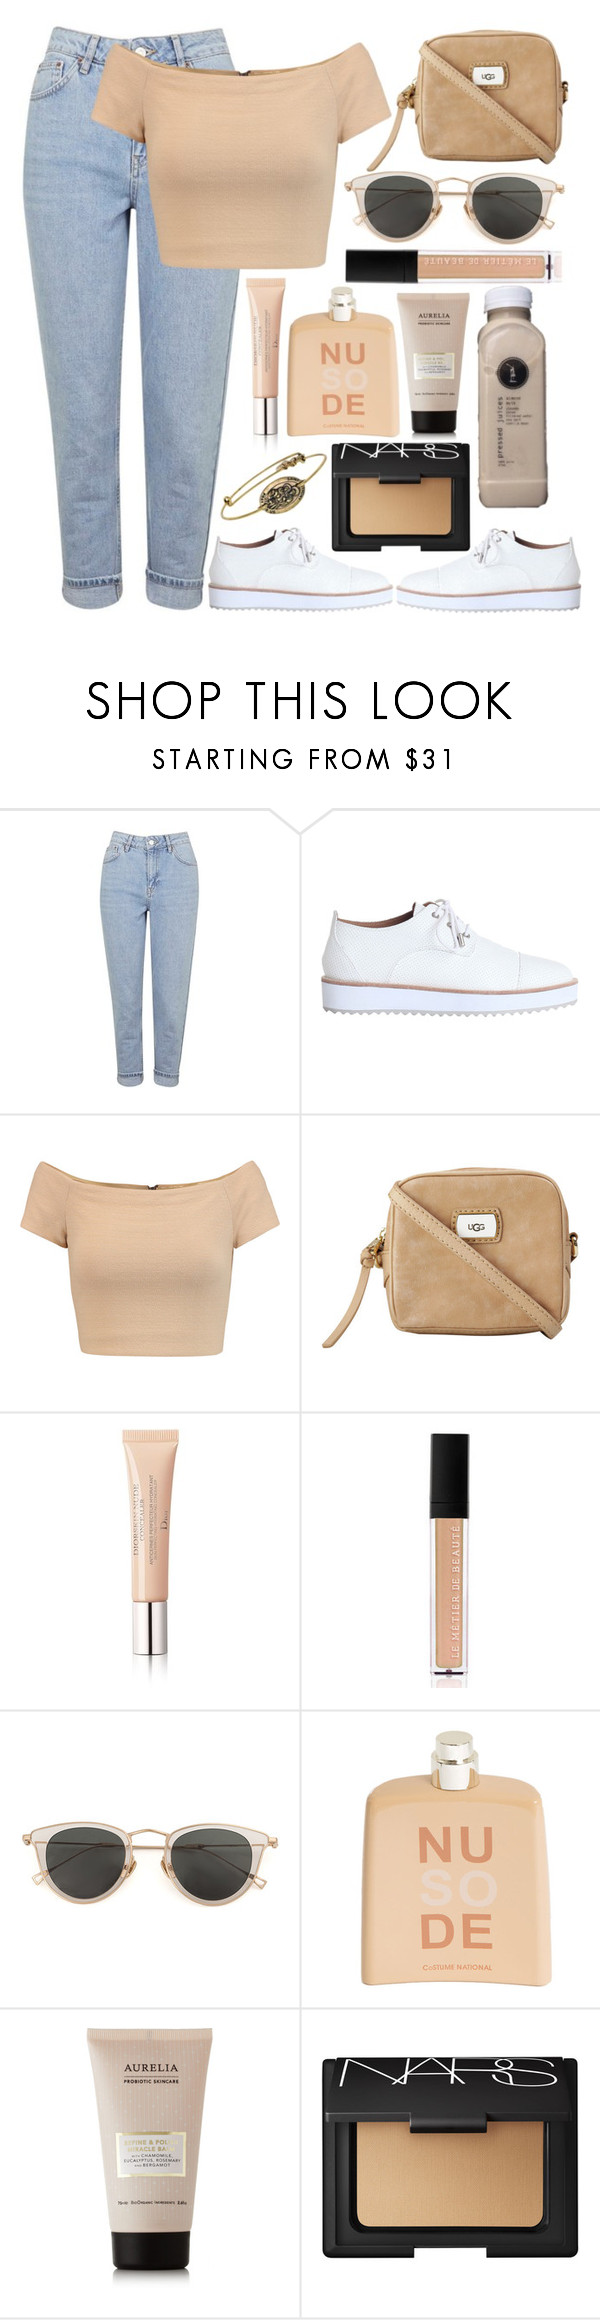 cc6066b6cef by burcaak ❤ liked on Polyvore featuring Topshop